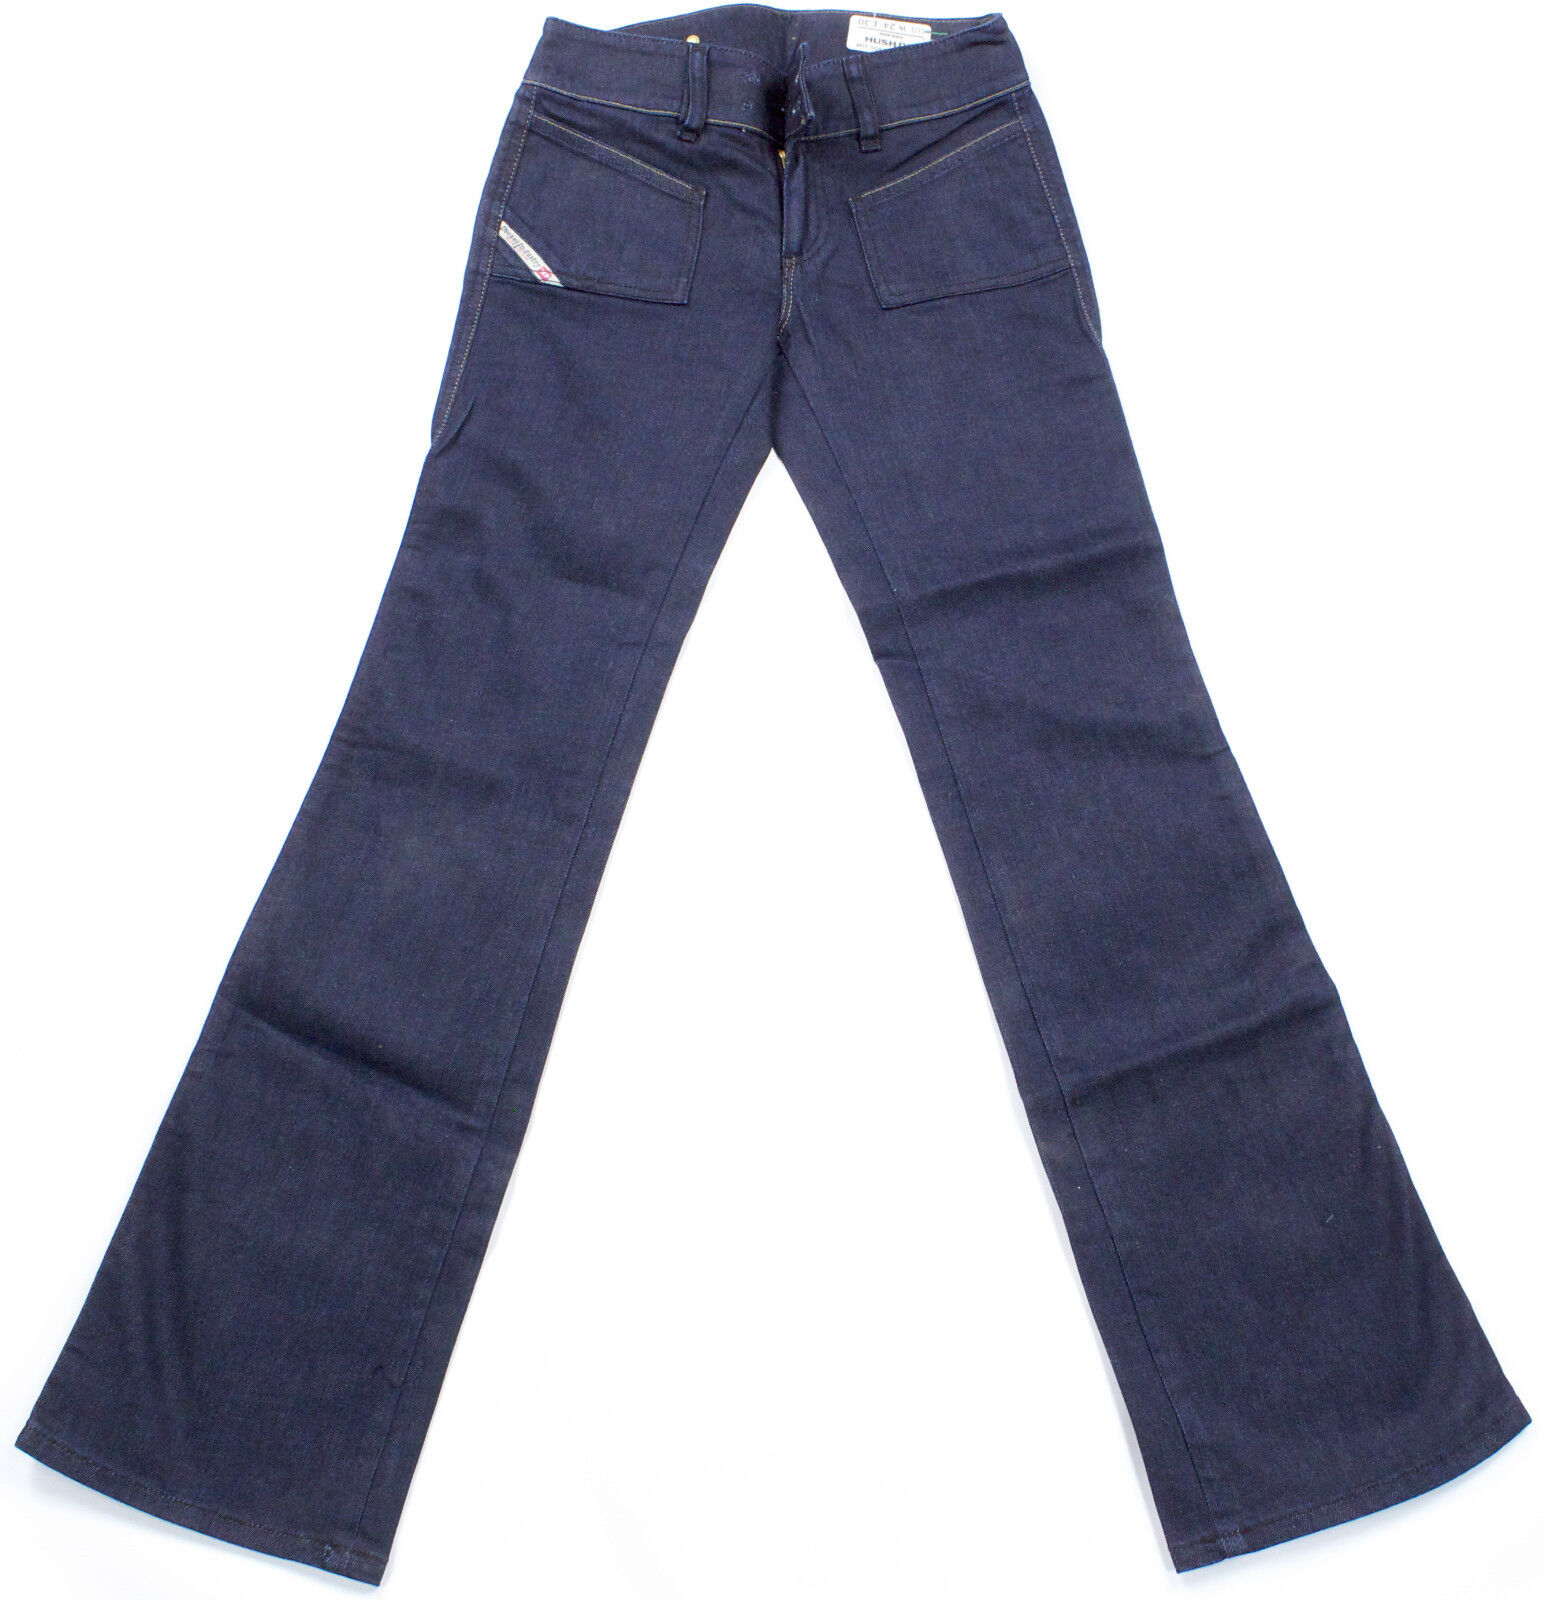 DIESEL HUSH DS 8AA STRETCH JEANS 24X30 AUTHENTIC